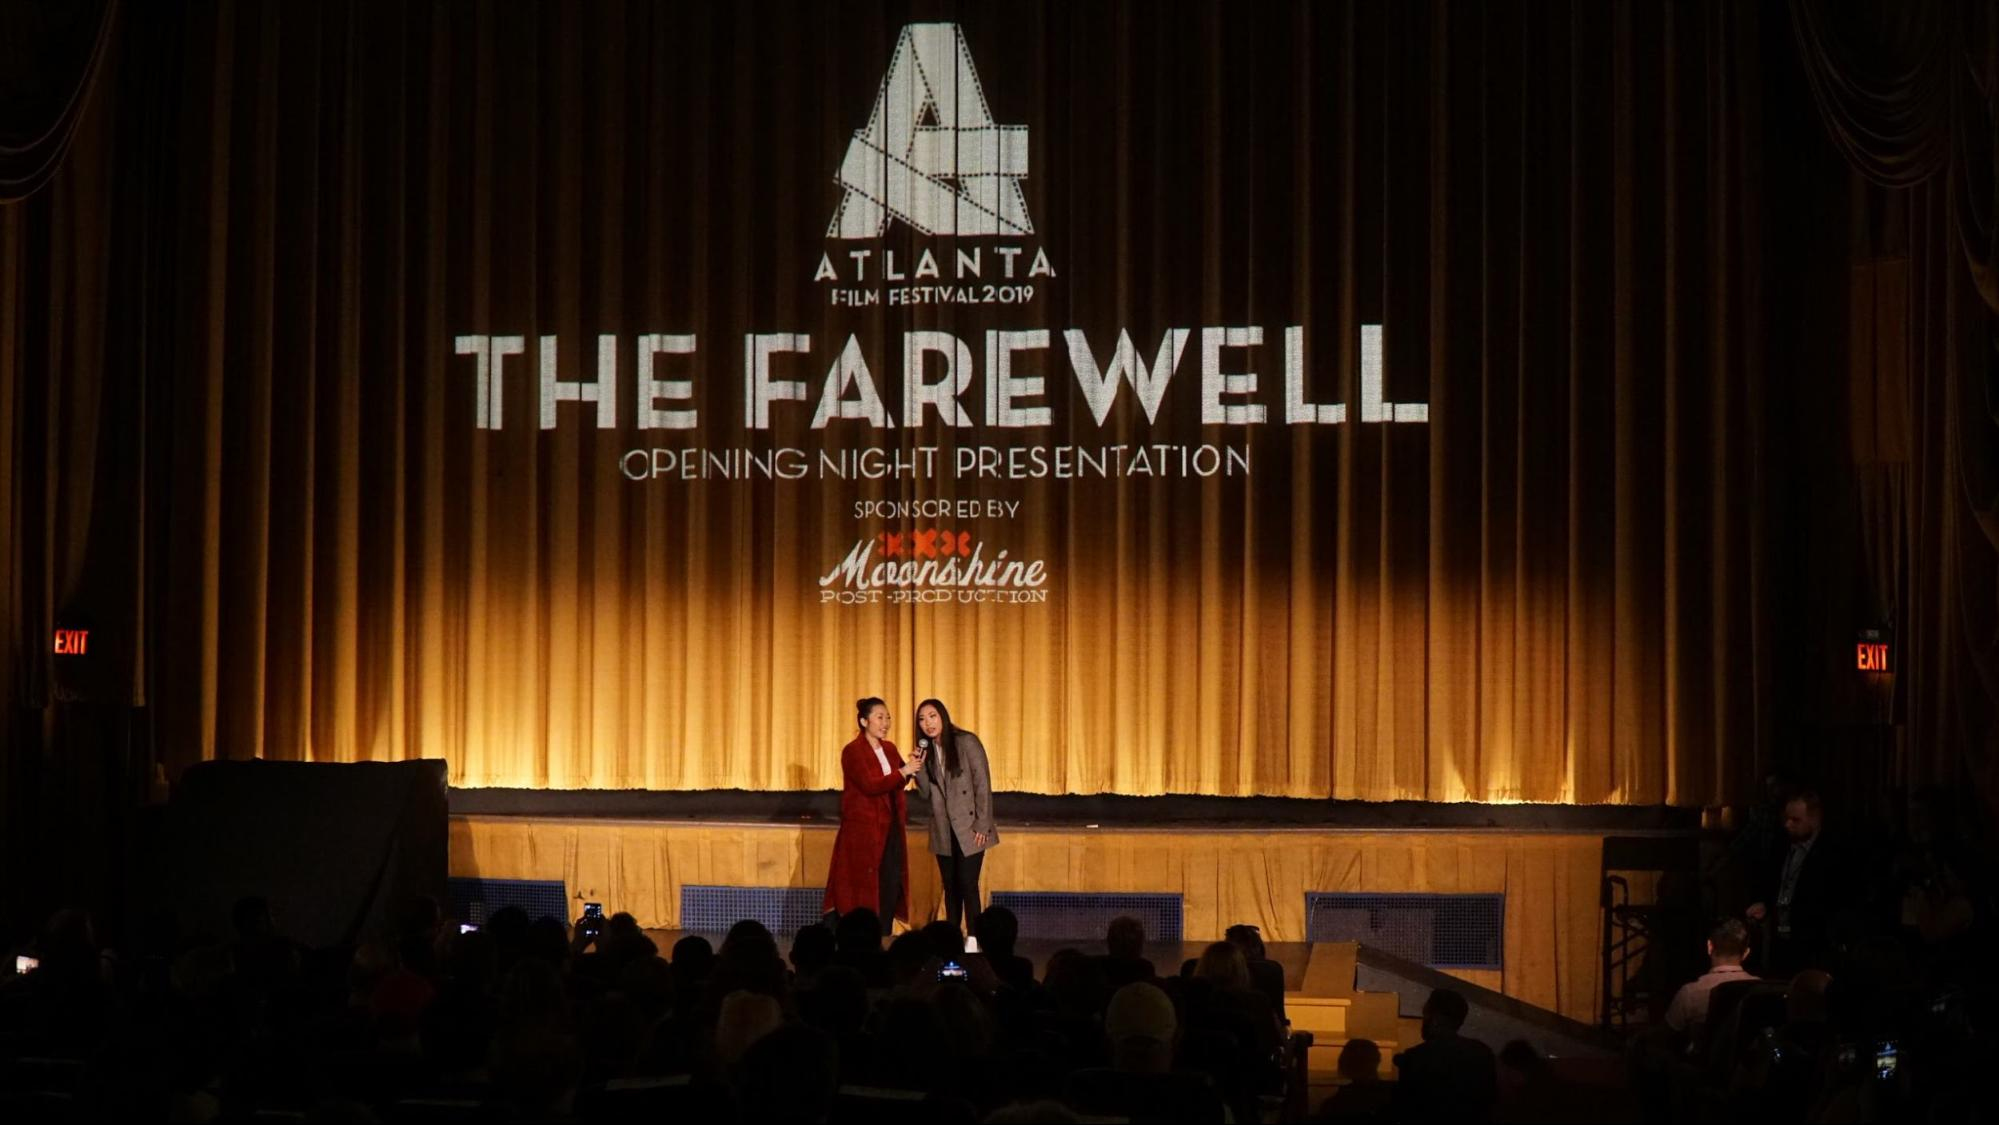 Wang and Awkwafina introduce The Farewell.